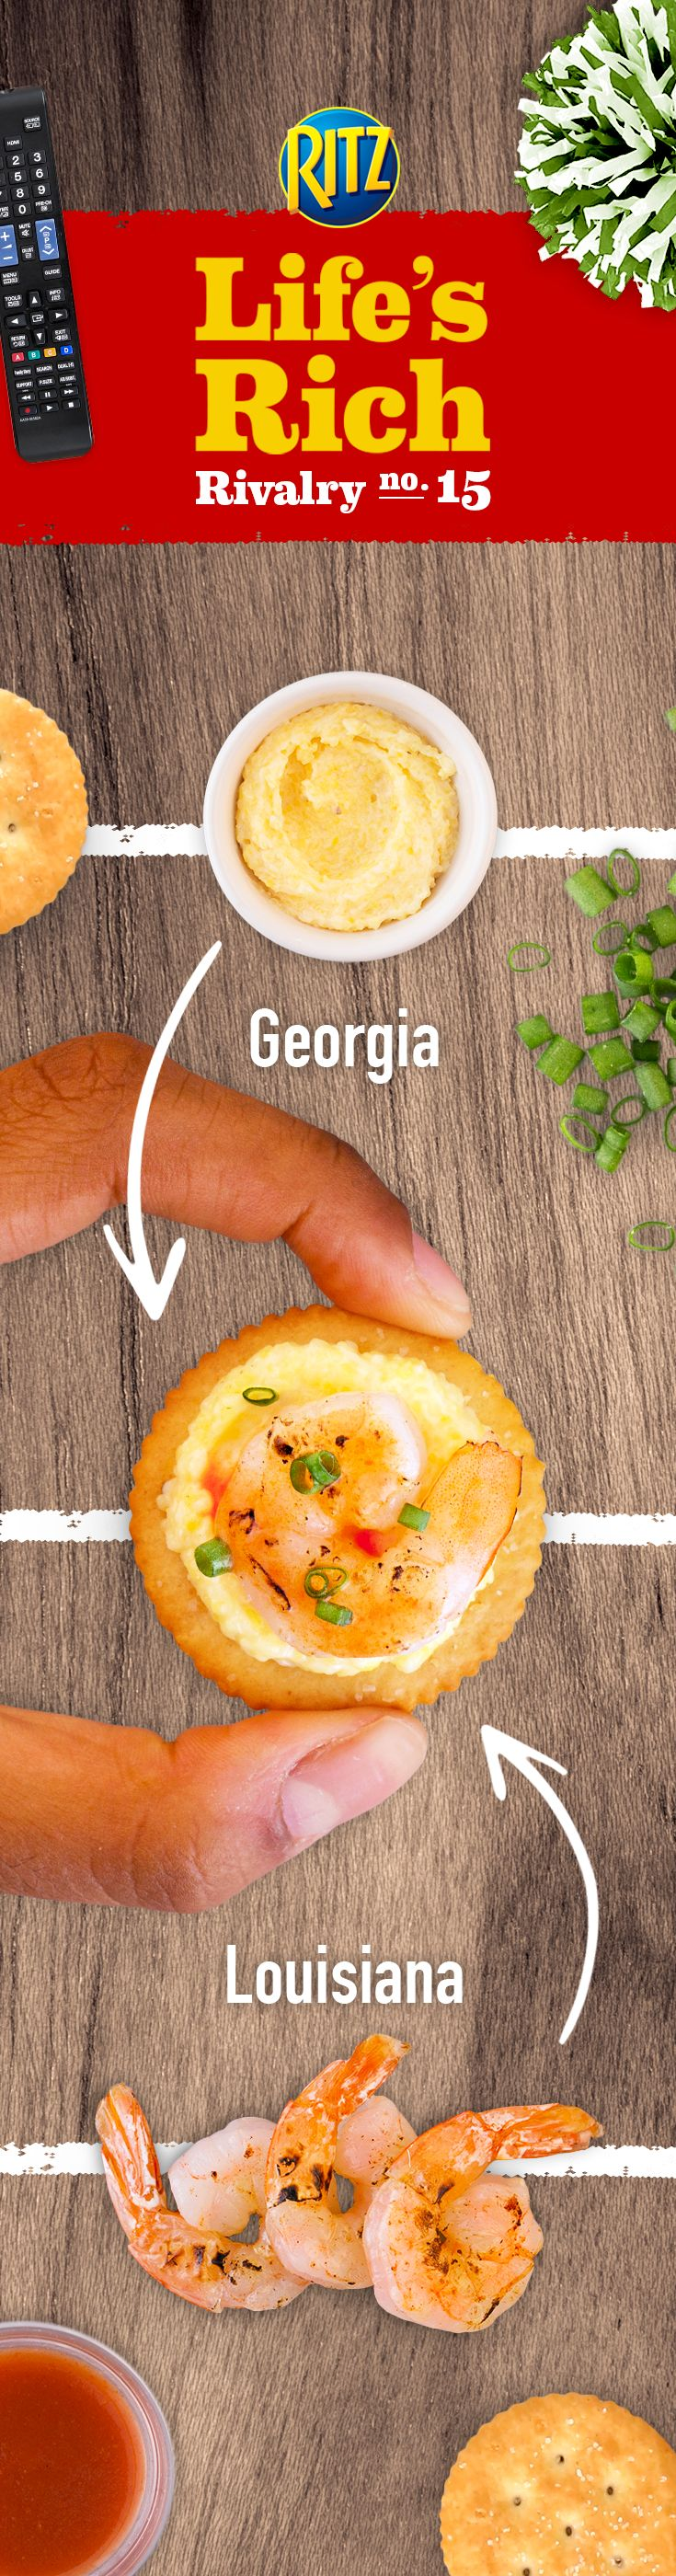 Rowdy guests rooting for rival teams? Bring in Georgia-style cheesy grits and Louisiana-style shrimp to smooth things over with Shrimp & Cheesy Grits Toppers. Follow these simple recipe steps for a memorable recipe: 1. Cook cheesy grits 2. Grill shrimp 3. Top RITZ Crackers w/ a layer of grits, a piece of shrimp, hot pepper sauce & chopped fresh chives. A little taste of the south goes a long way in cooling down heated games!